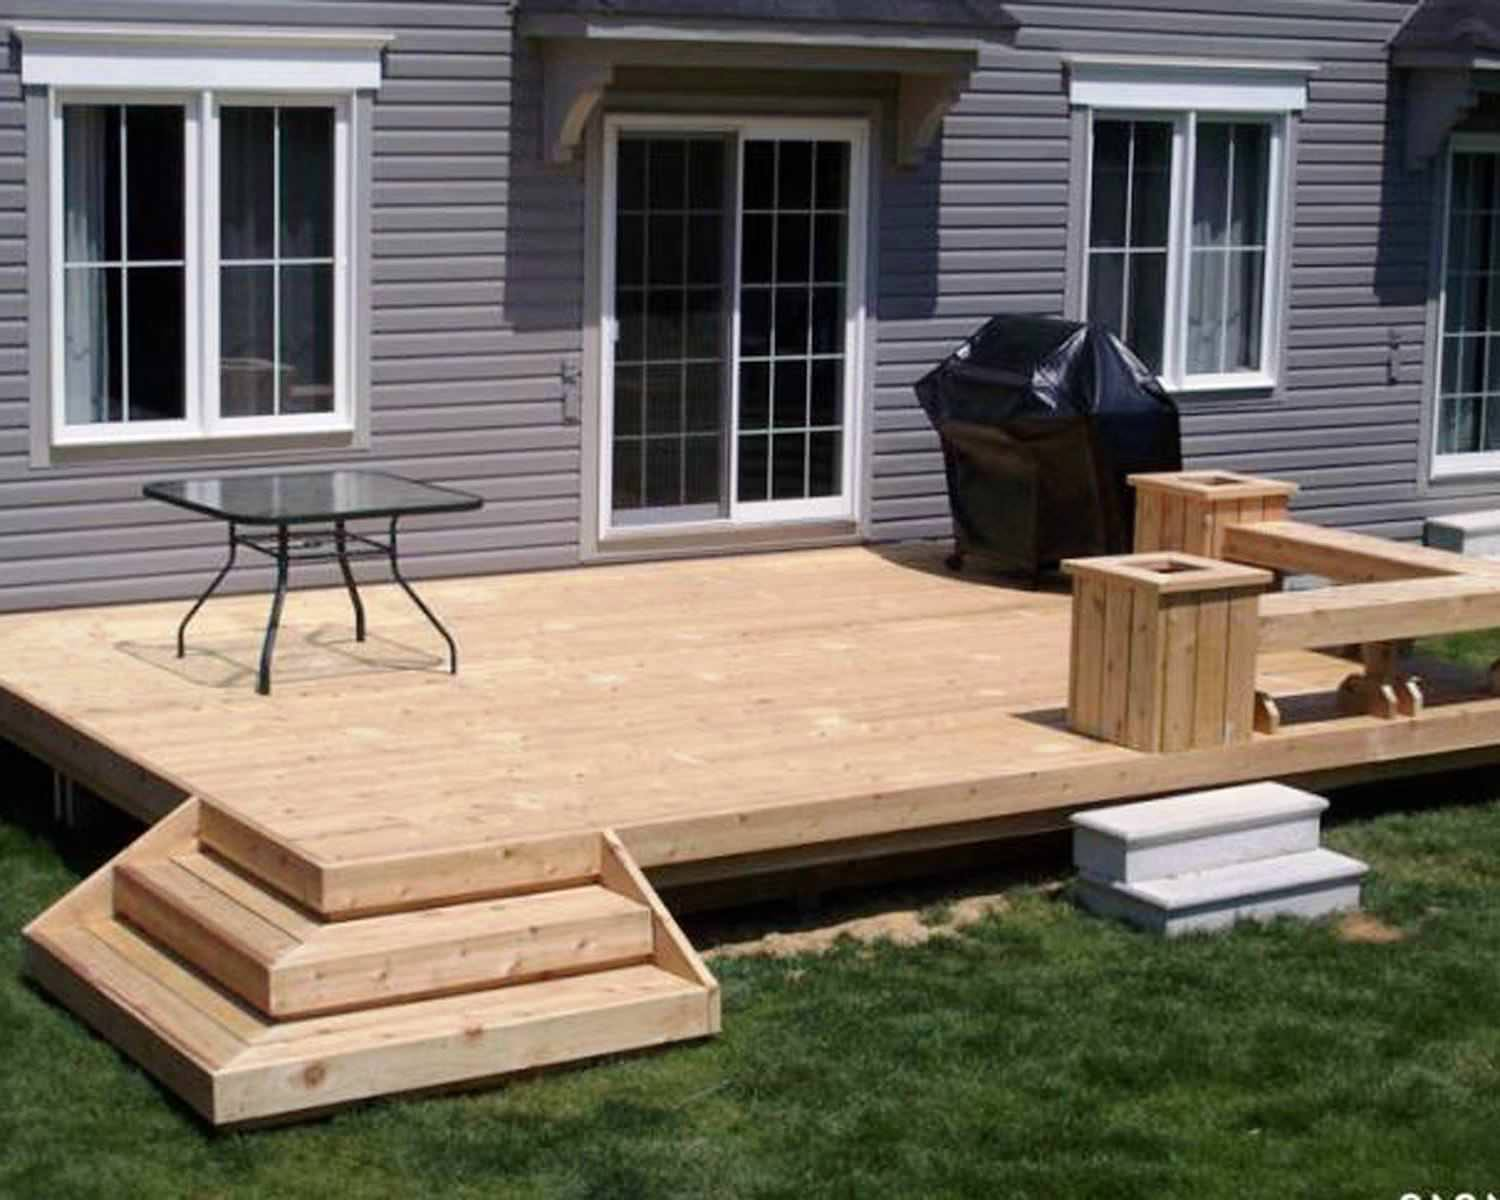 Taking Wooden Floor Tile also Square Glass Coffee Table For Backyard